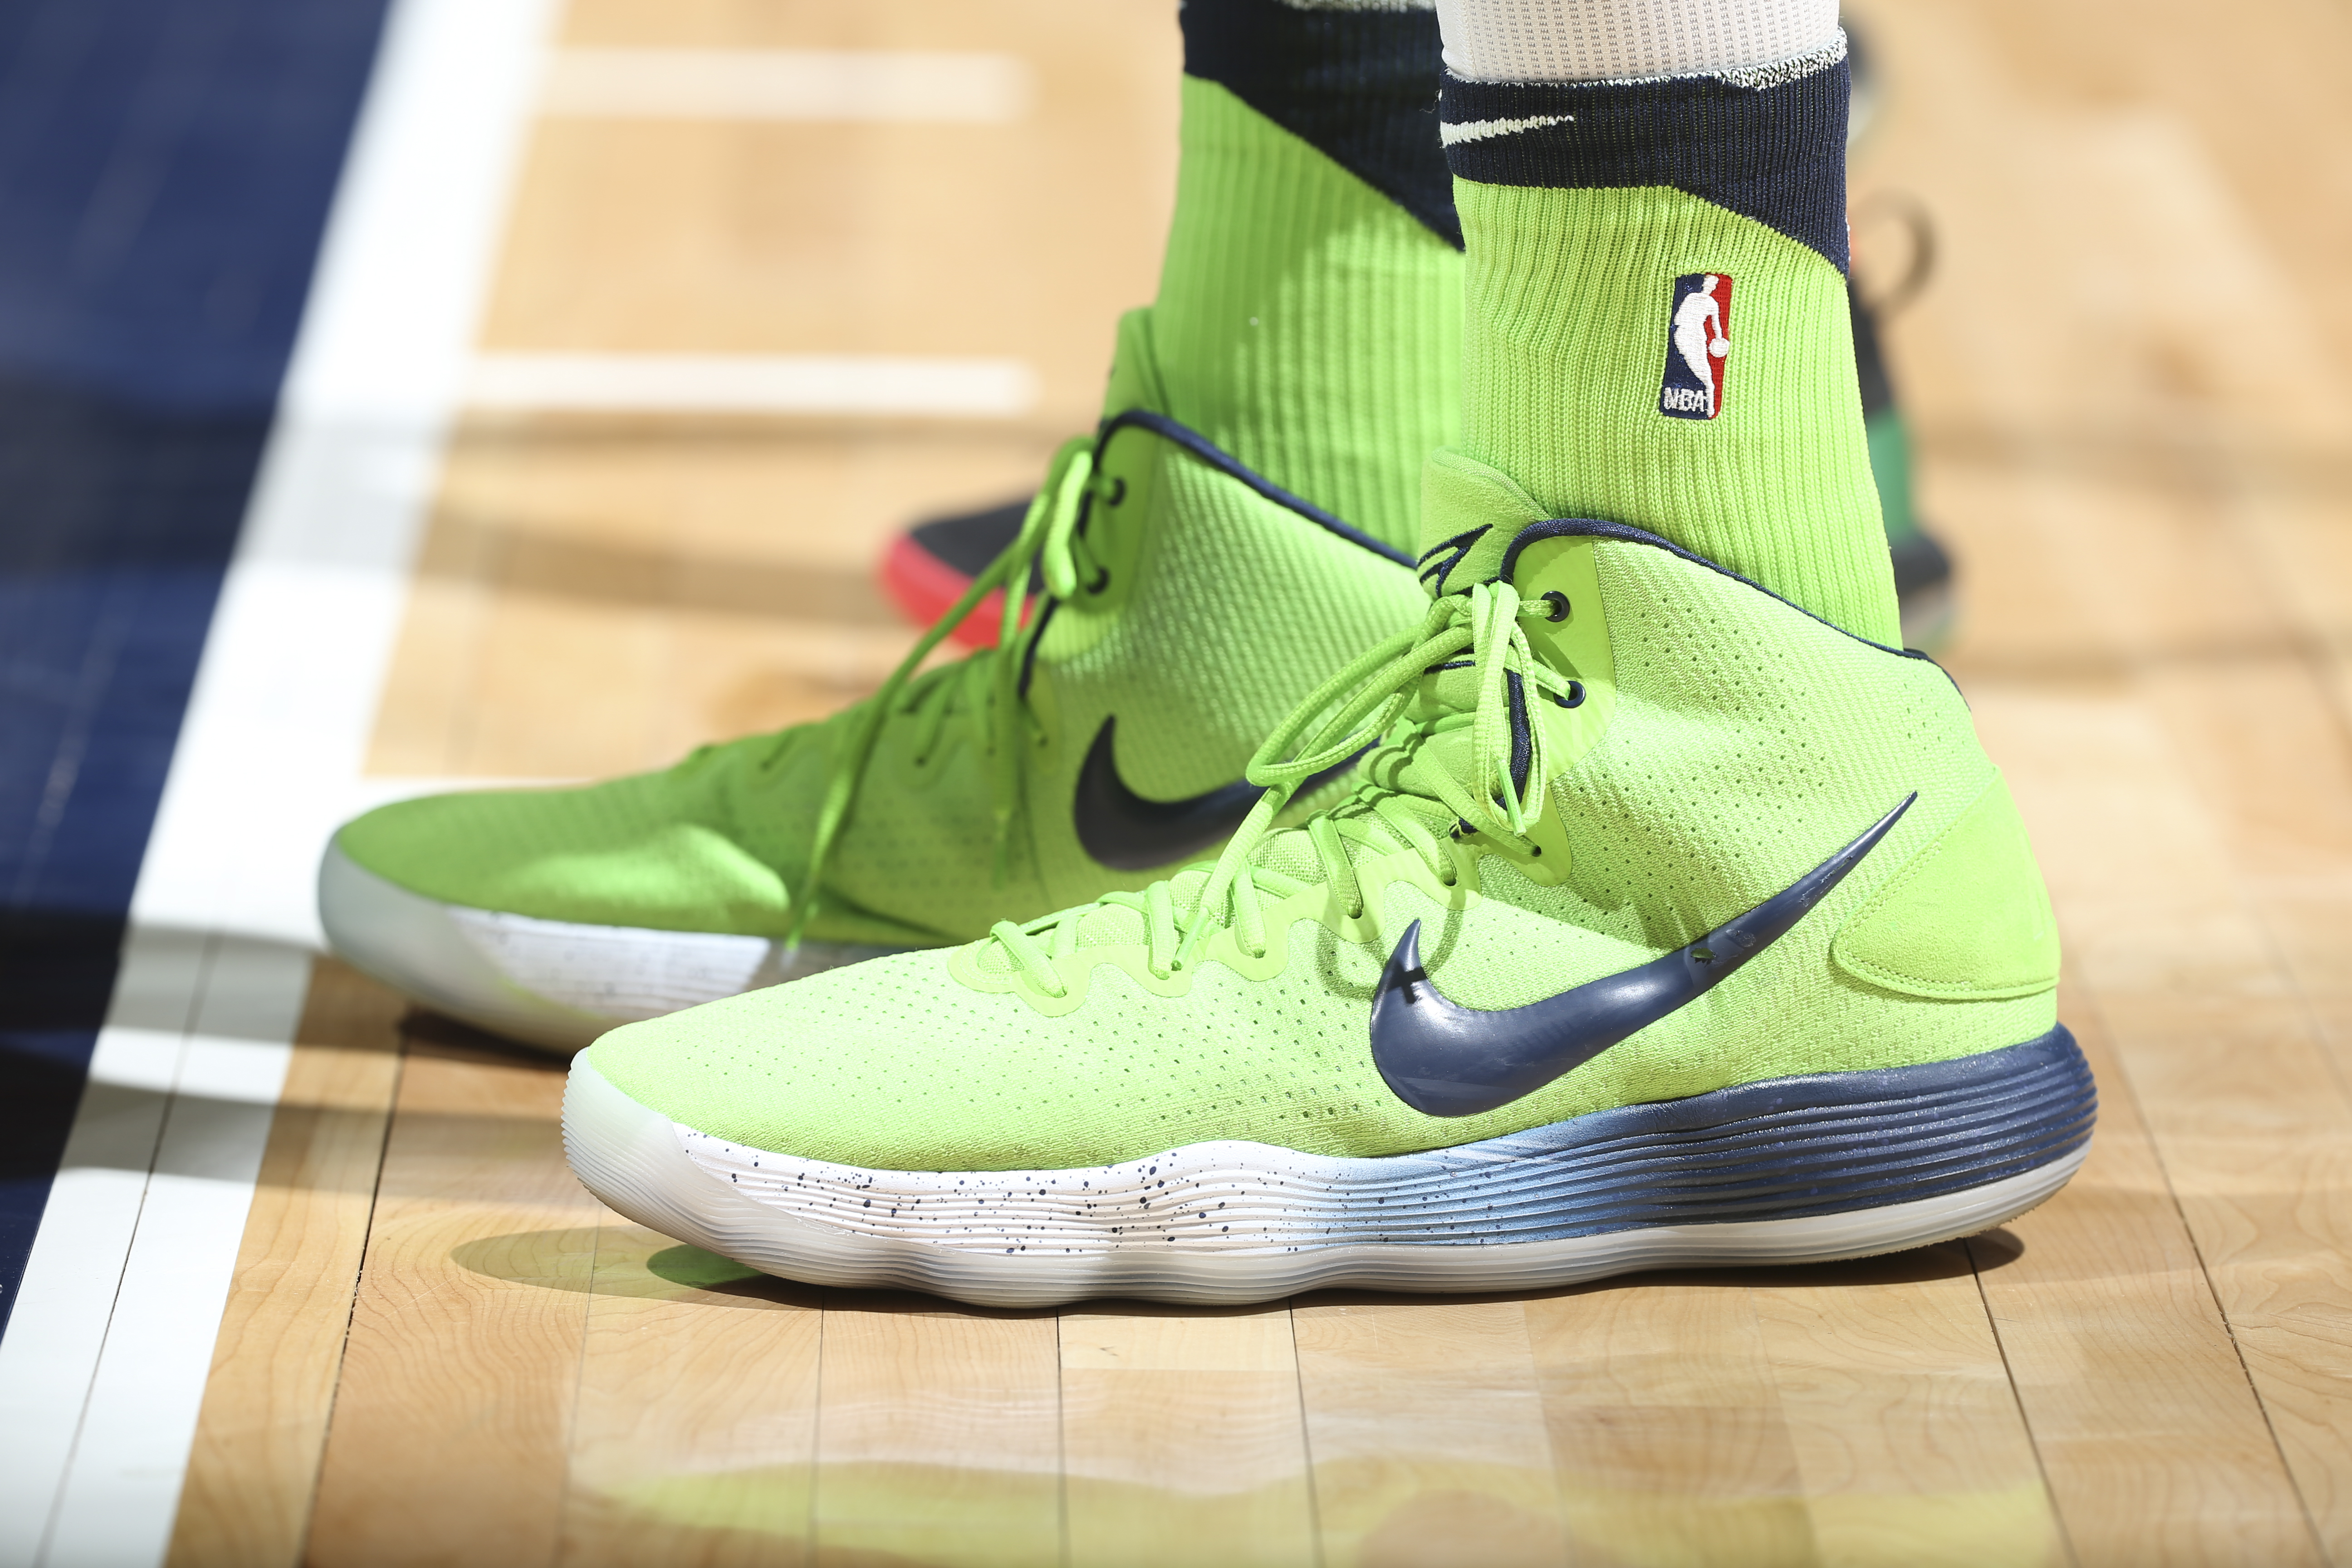 Karl-Anthony Towns has Rick \u0026 Morty shoes